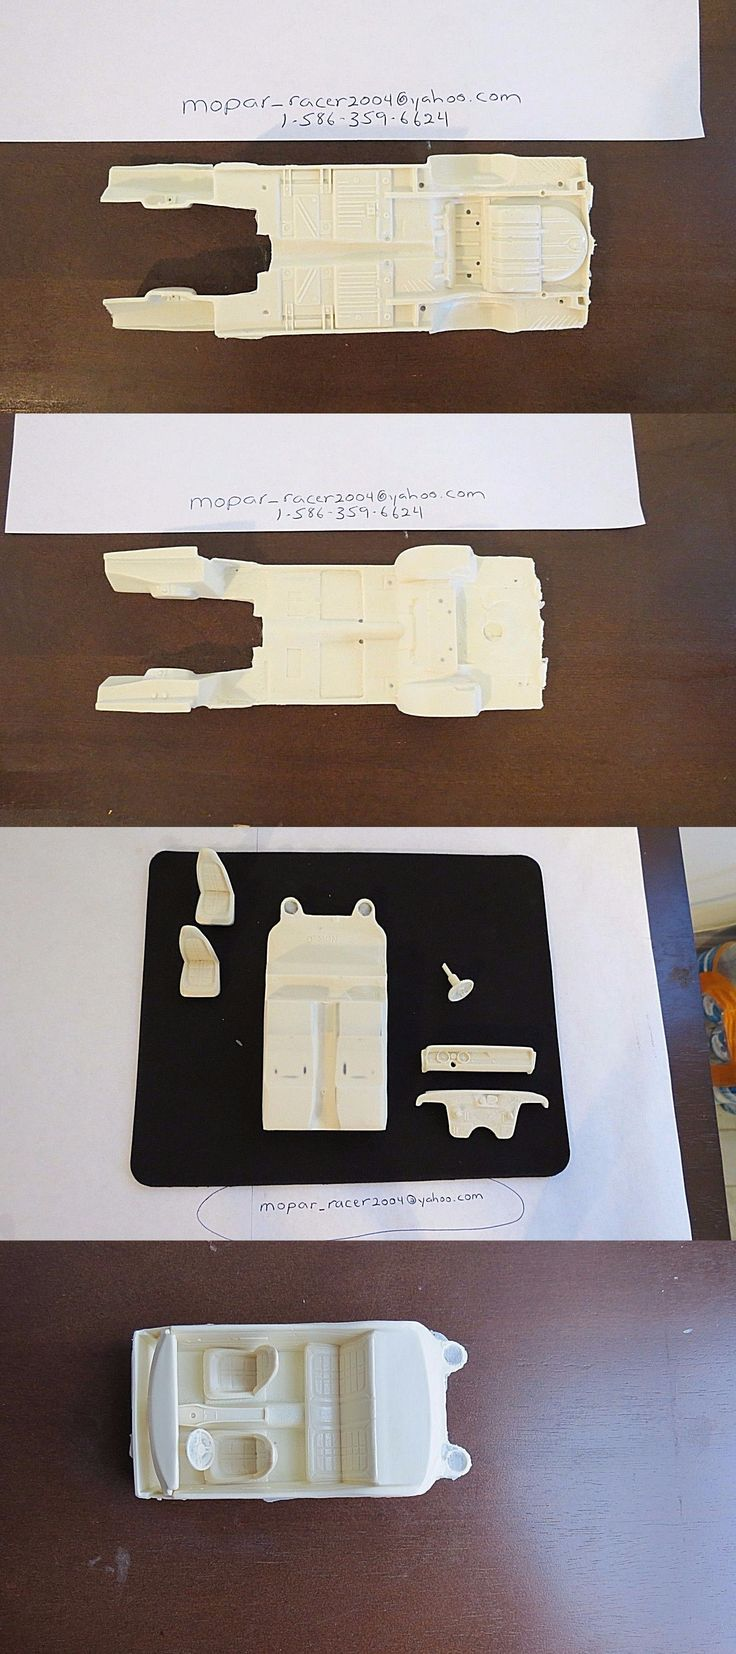 Parts 166798: 1 25 Scale Resin Cast 1971 Dodge Demon Chassis Plate And Full Interior -> BUY IT NOW ONLY: $35.99 on eBay!